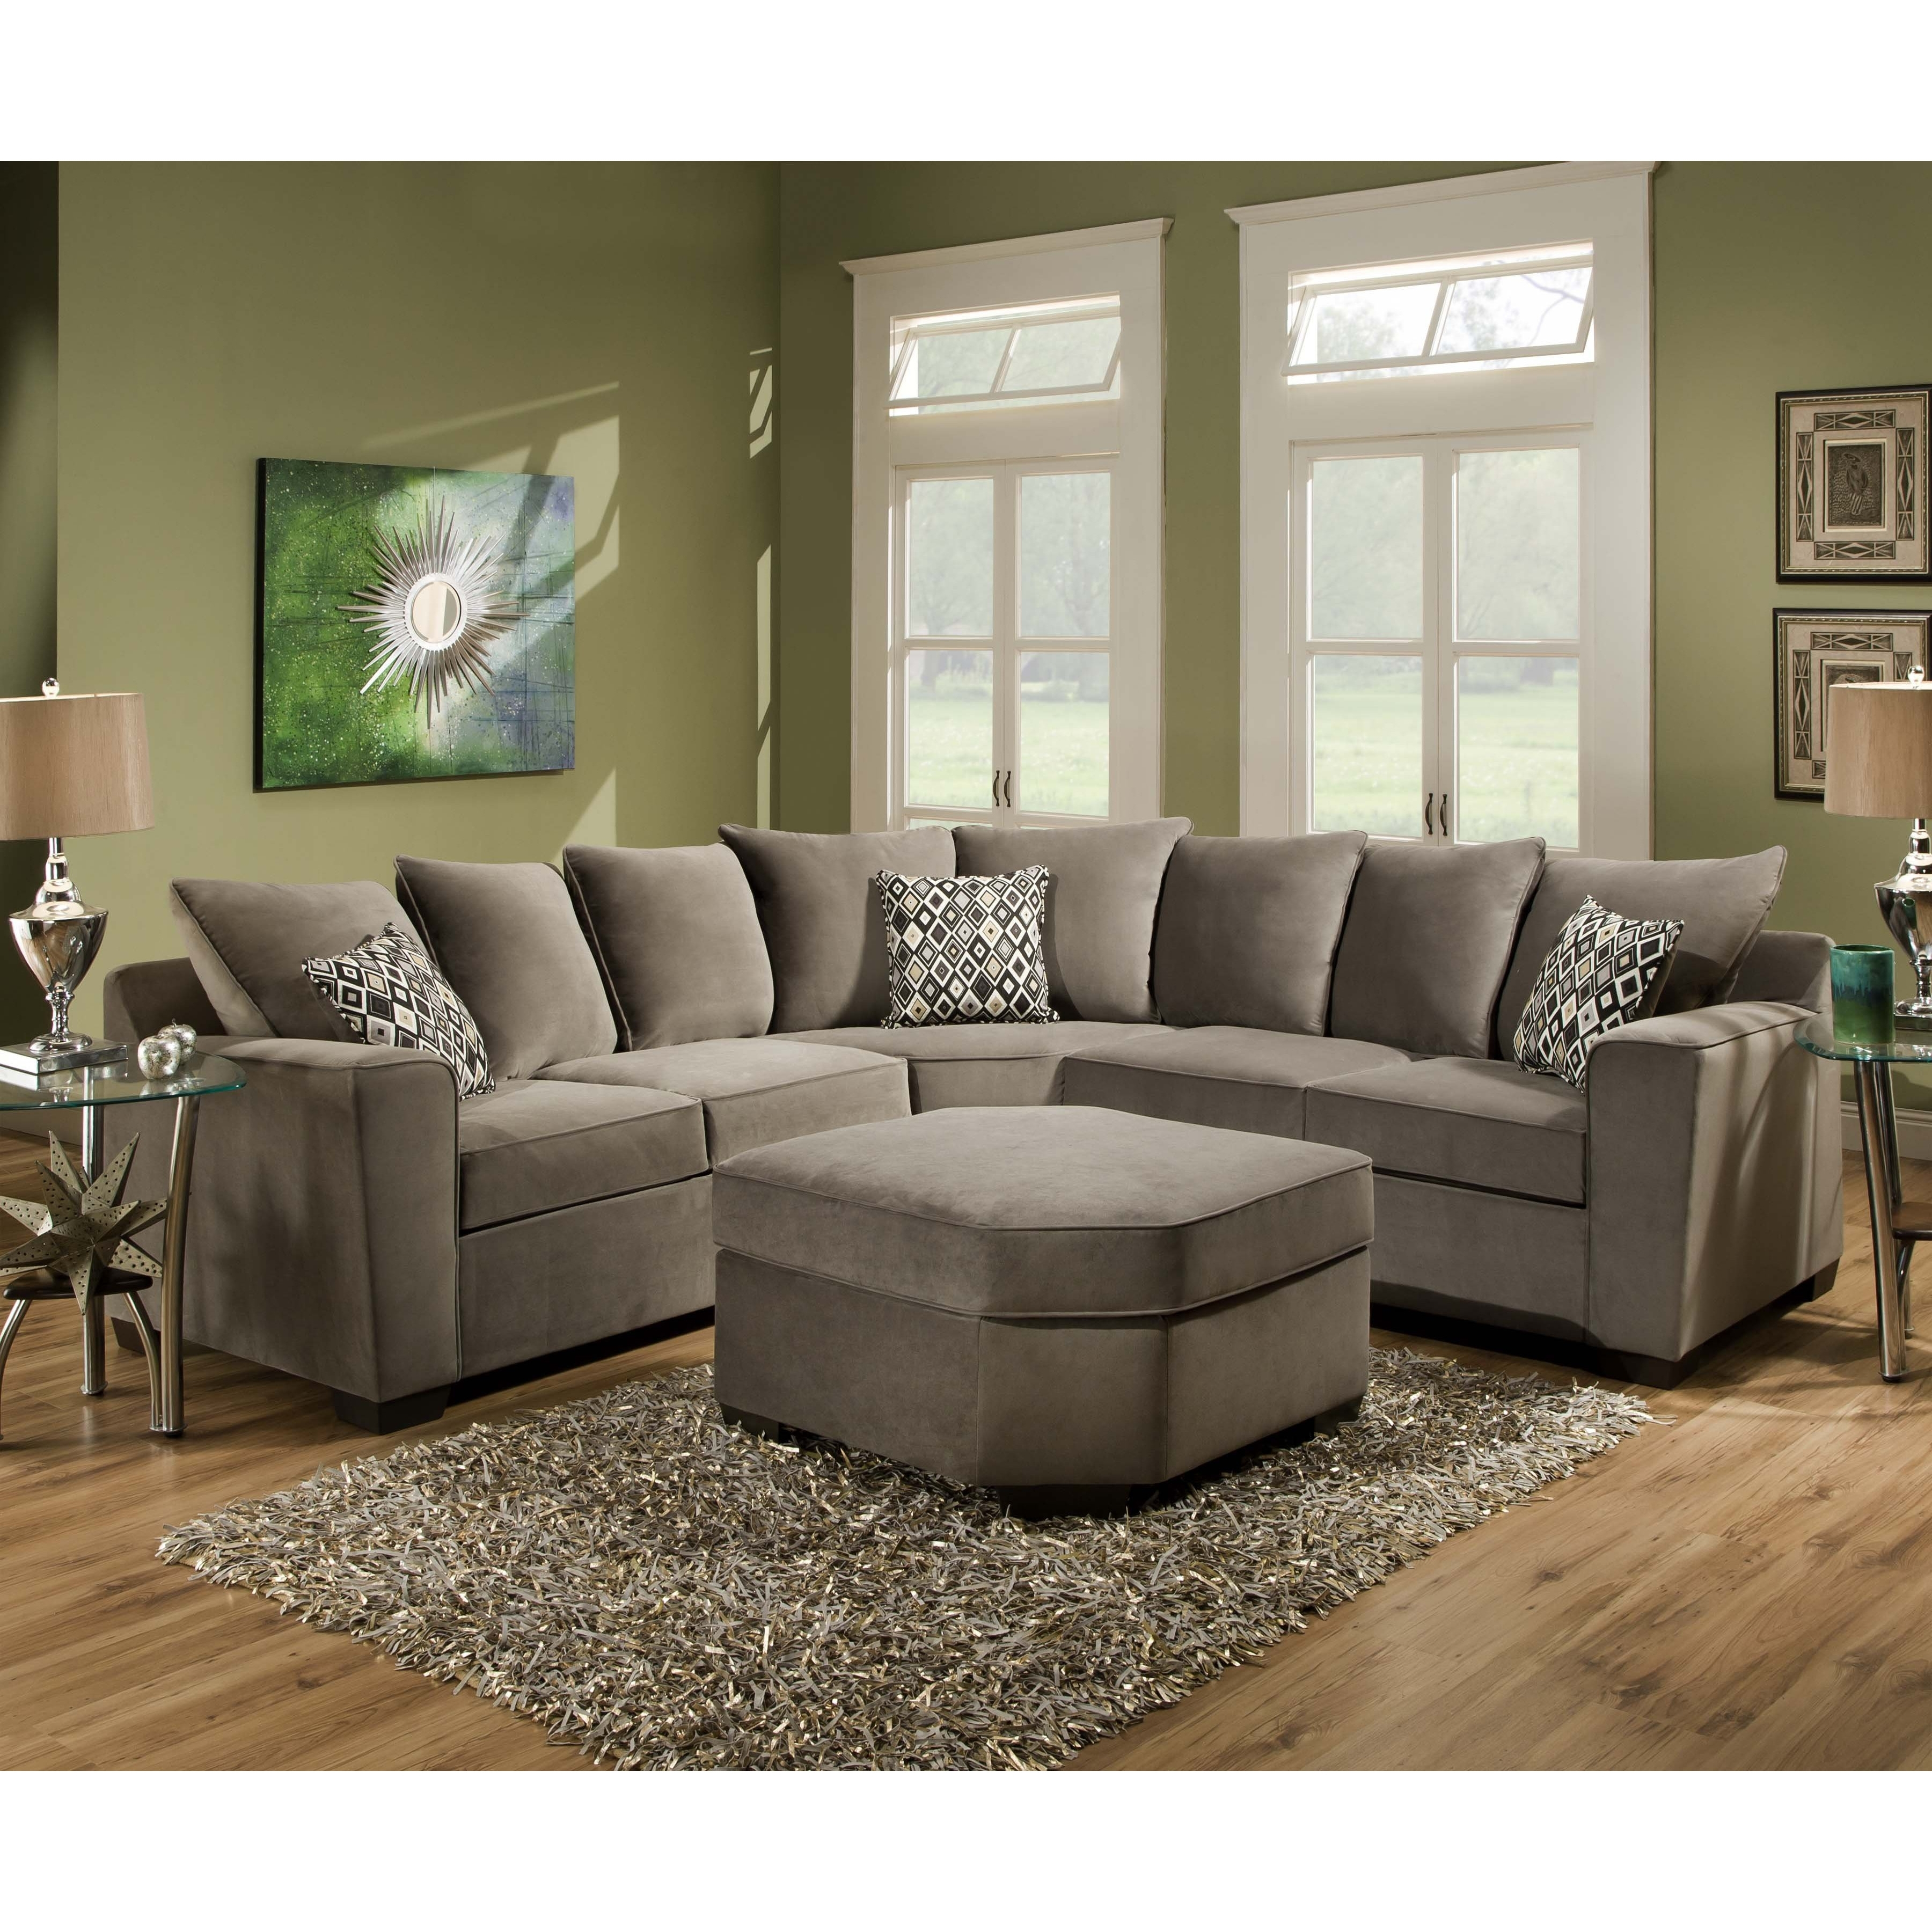 Beautiful American Freight Sofas With Additional Decorating American Regarding Pittsburgh Sectional Sofas (Image 1 of 10)